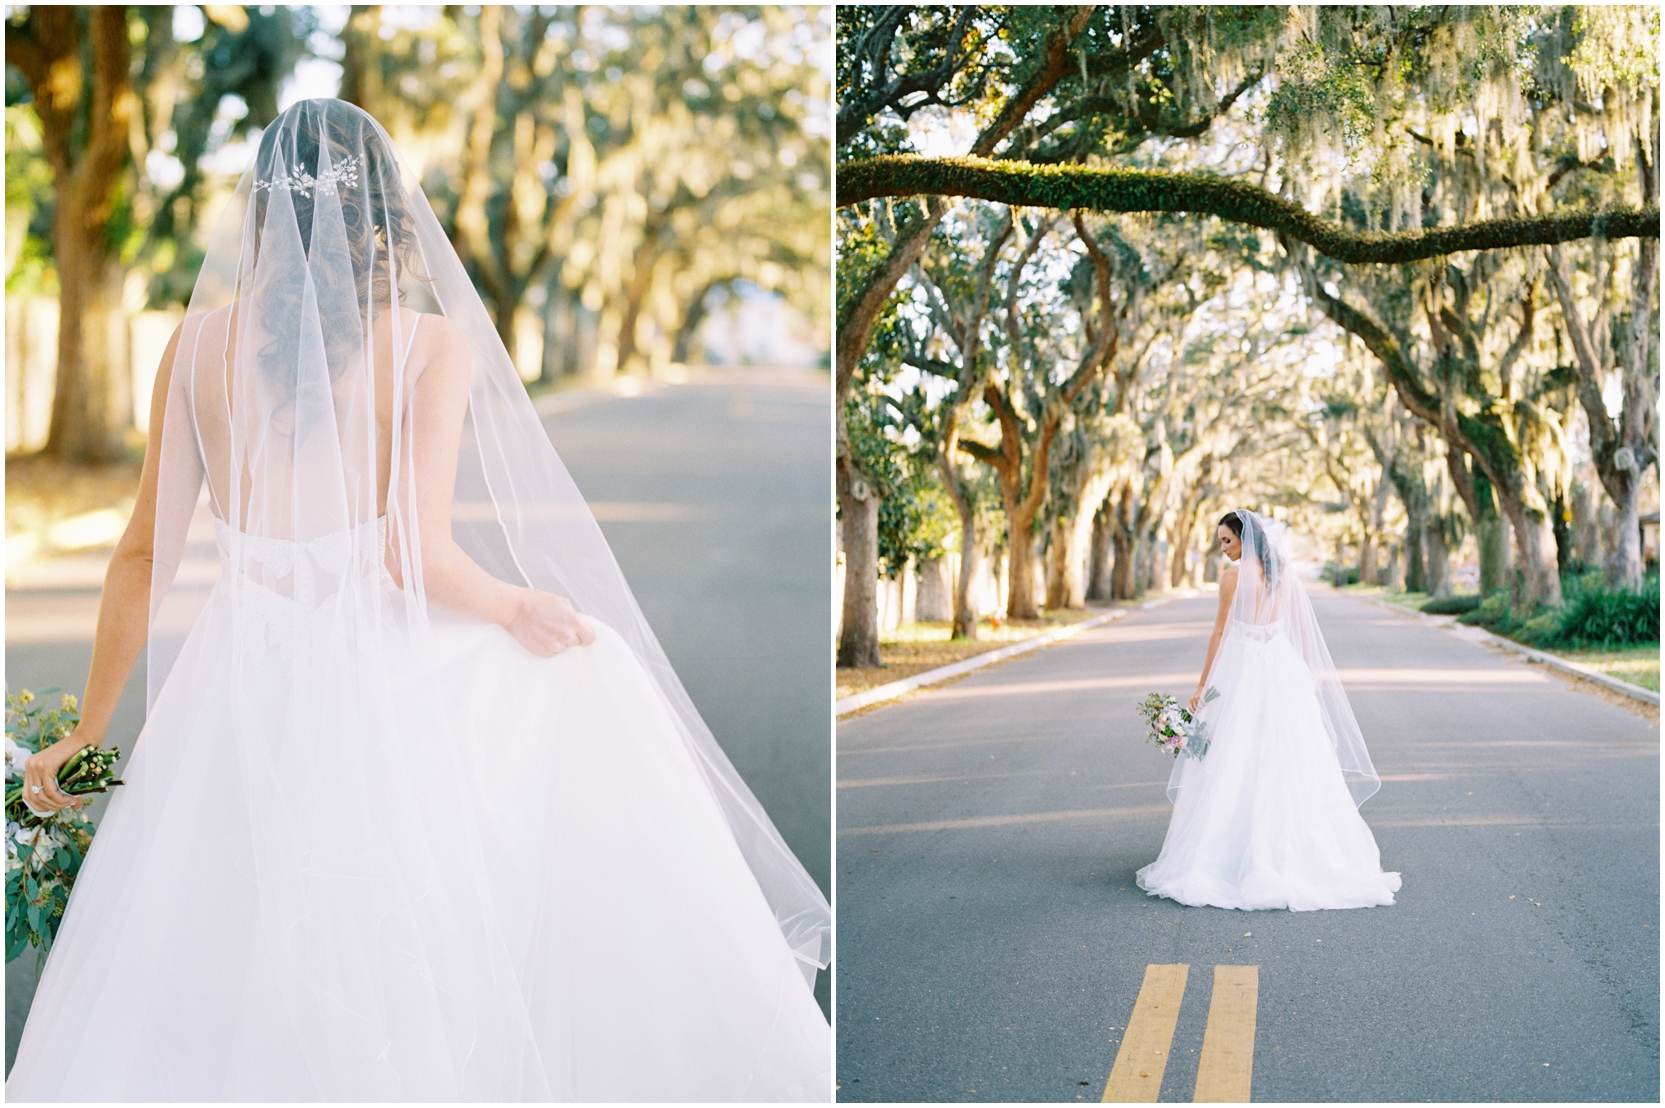 Lisa Silva Photography -Bridal Portrait Session in St. Augustine, Florida- Jacksonville and North East Florida Fine Art Film Photographer_0022.jpg